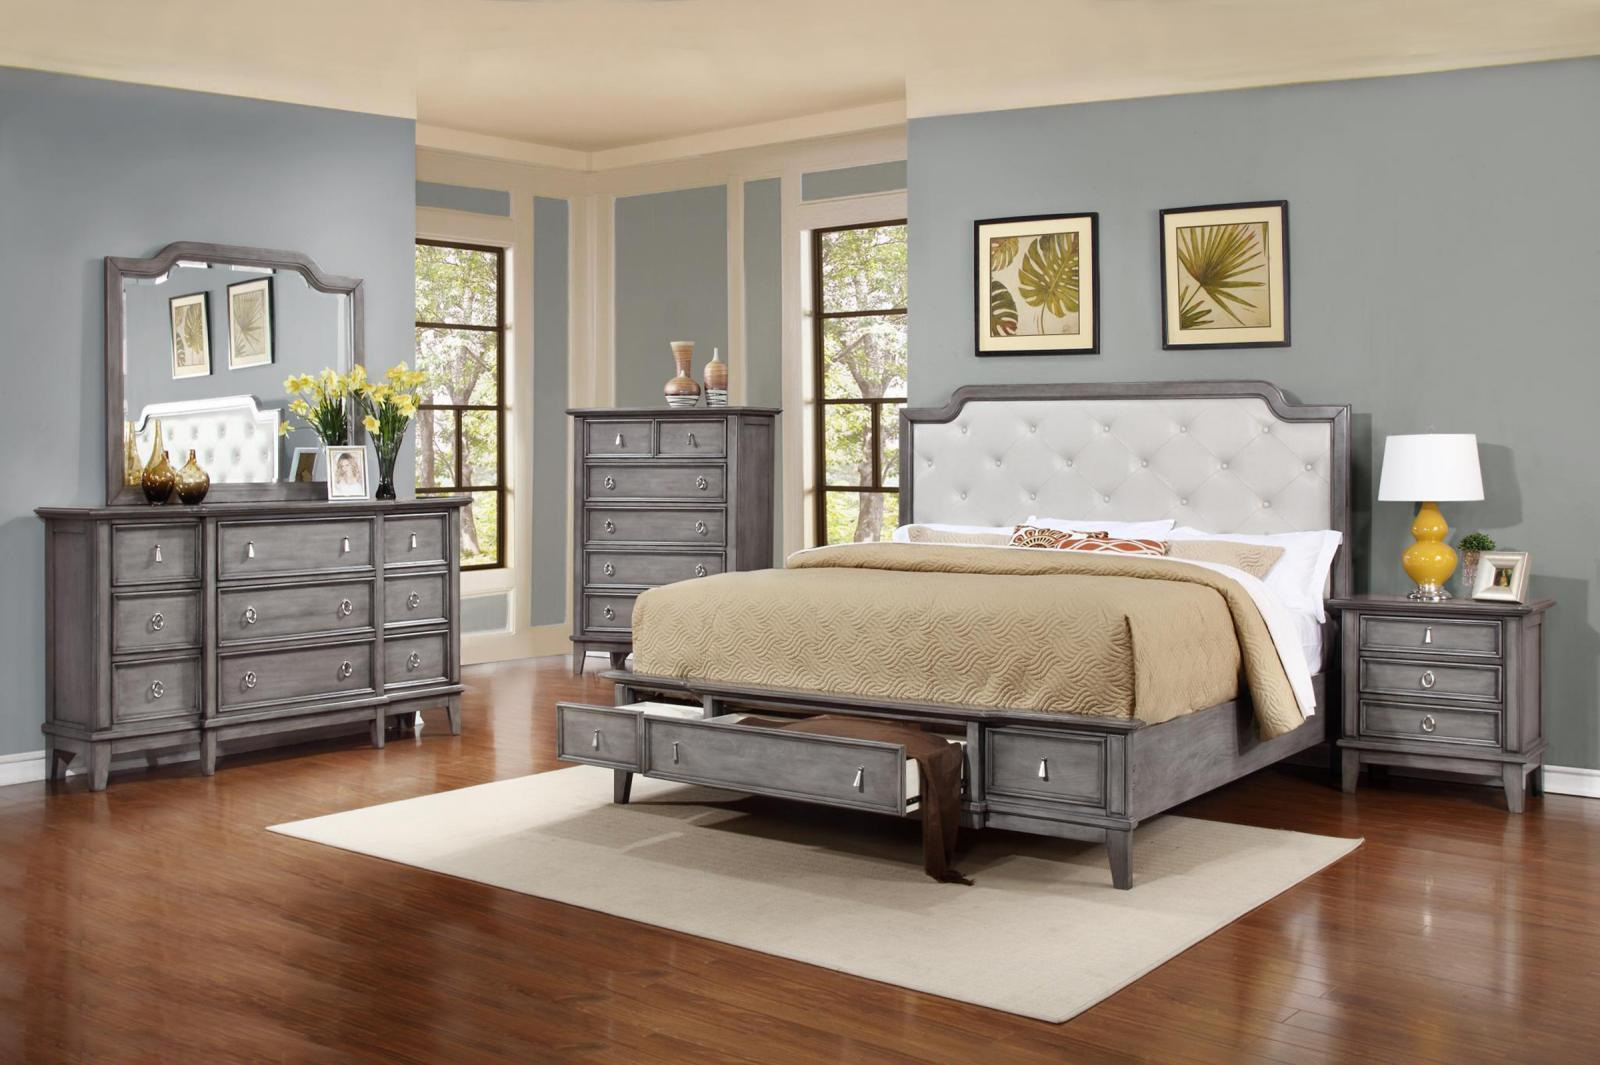 Soflex emmalee grey button tufted king storage bedroom set for Gray bedroom furniture sets